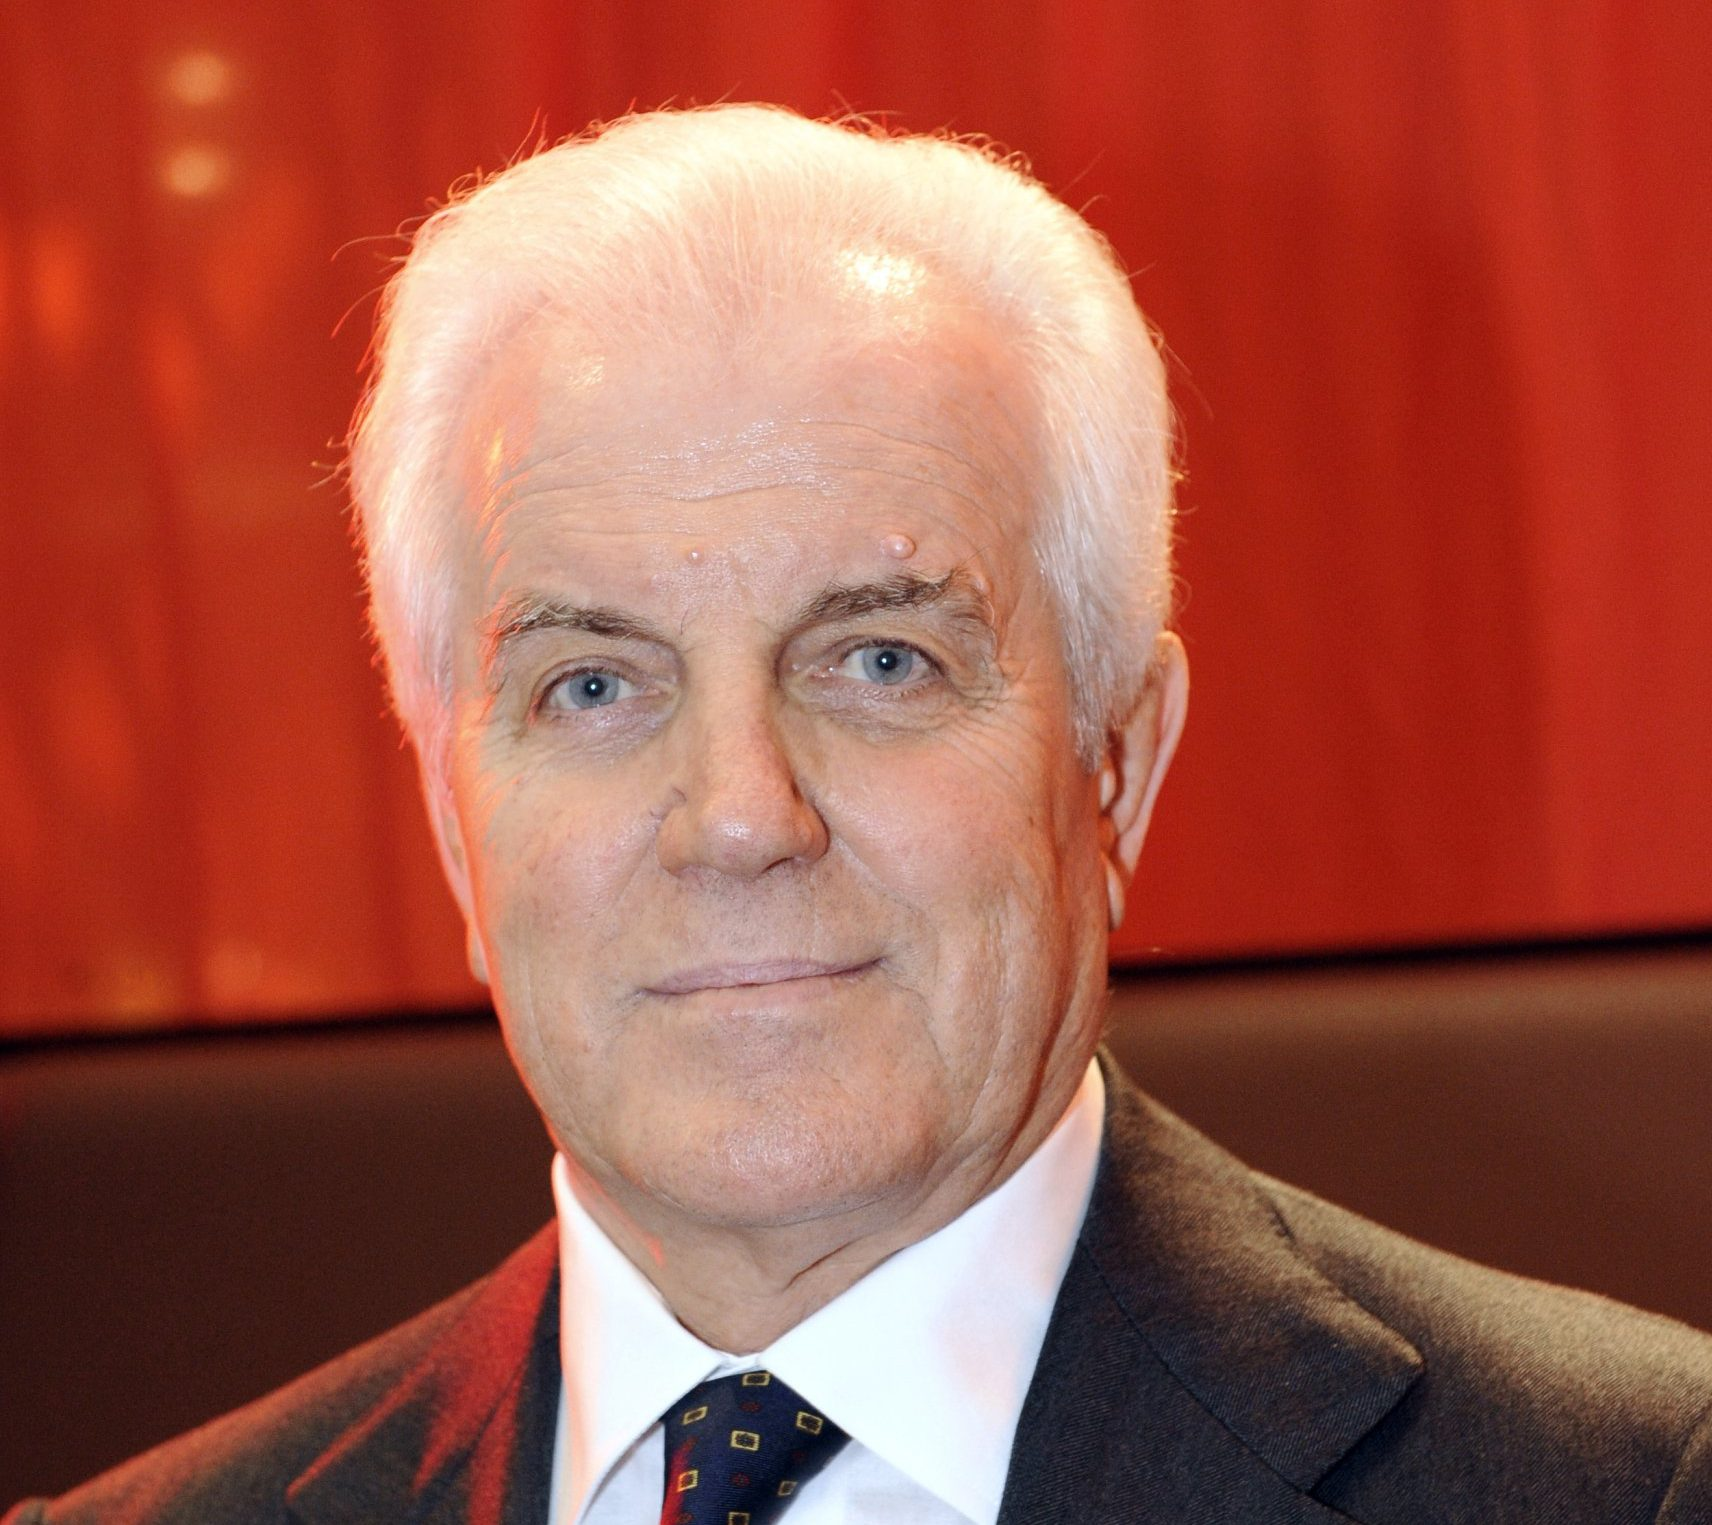 Gilberto Benetton, member of the board of directors of both Edizione srl and Benetton Group, poses on December 16, 2009 in Paris. He is also chairman of Autogrill and a director of the Benetton Group. AFP PHOTO / BERTRAND GUAY (Photo credit should read BERTRAND GUAY/AFP/Getty Images)